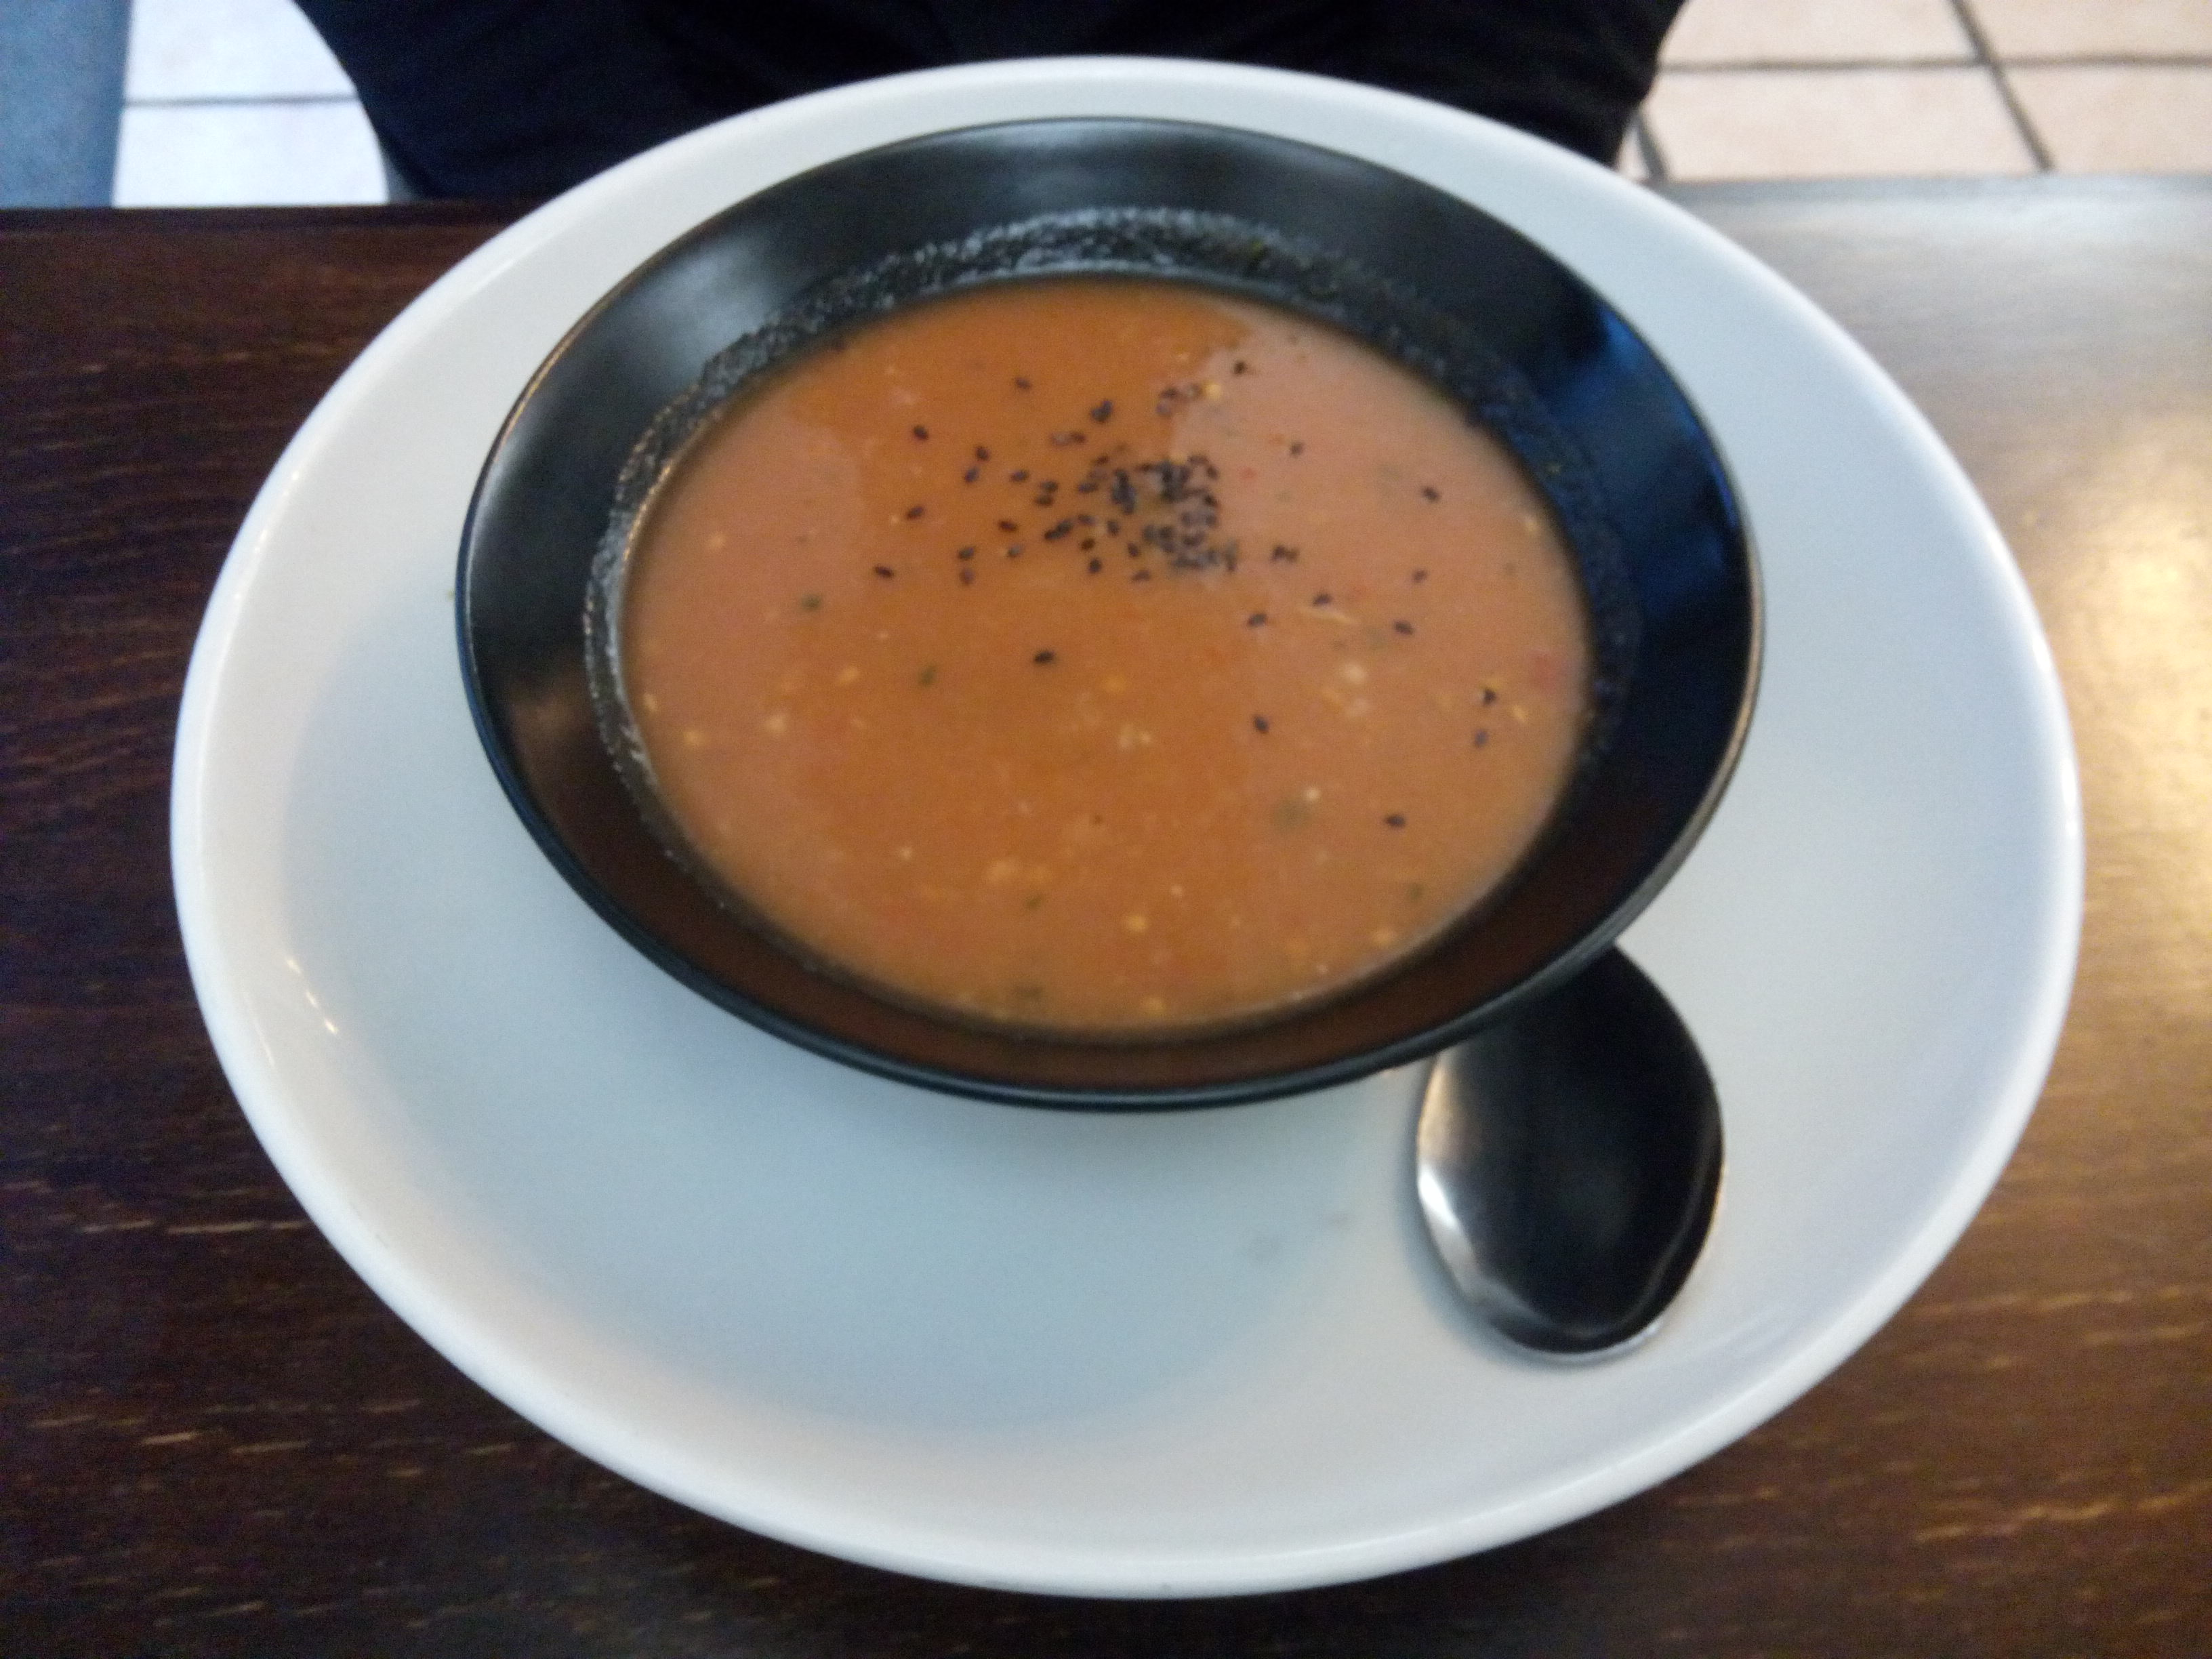 A black bowl containing orange soup on a white plate with a spoon